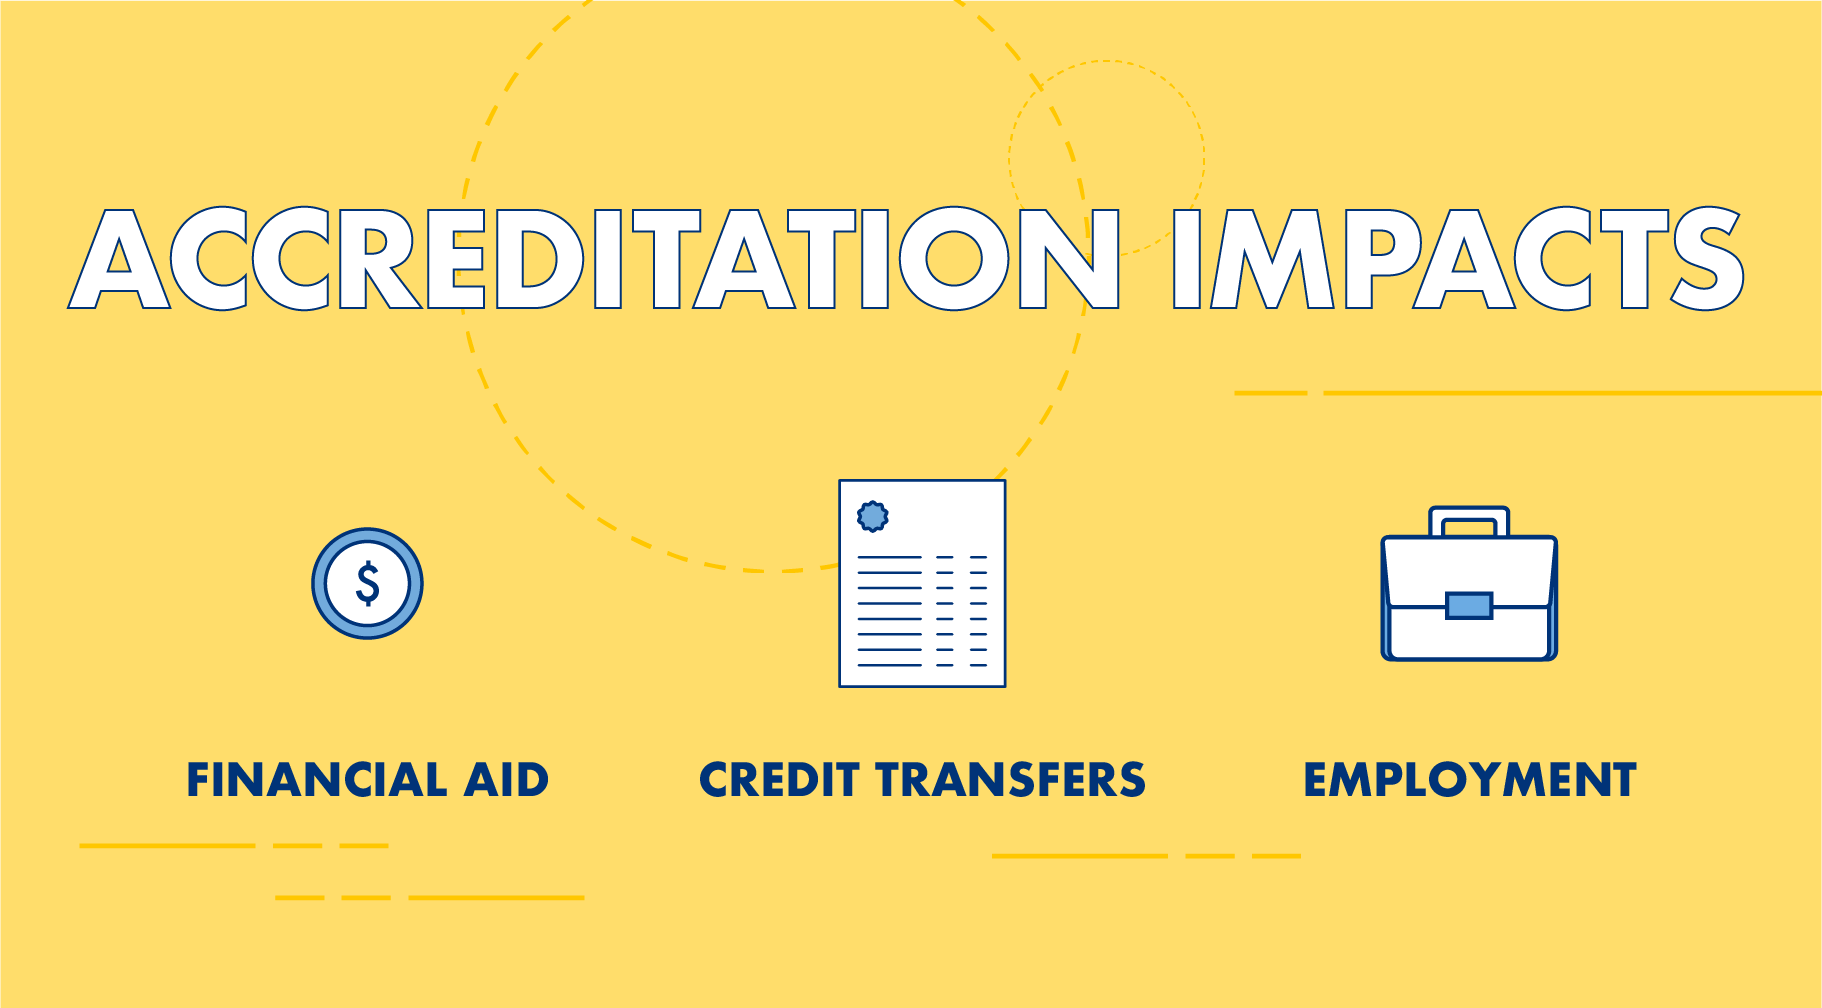 Impacts on accreditation – financial aid, credit transfer and employment